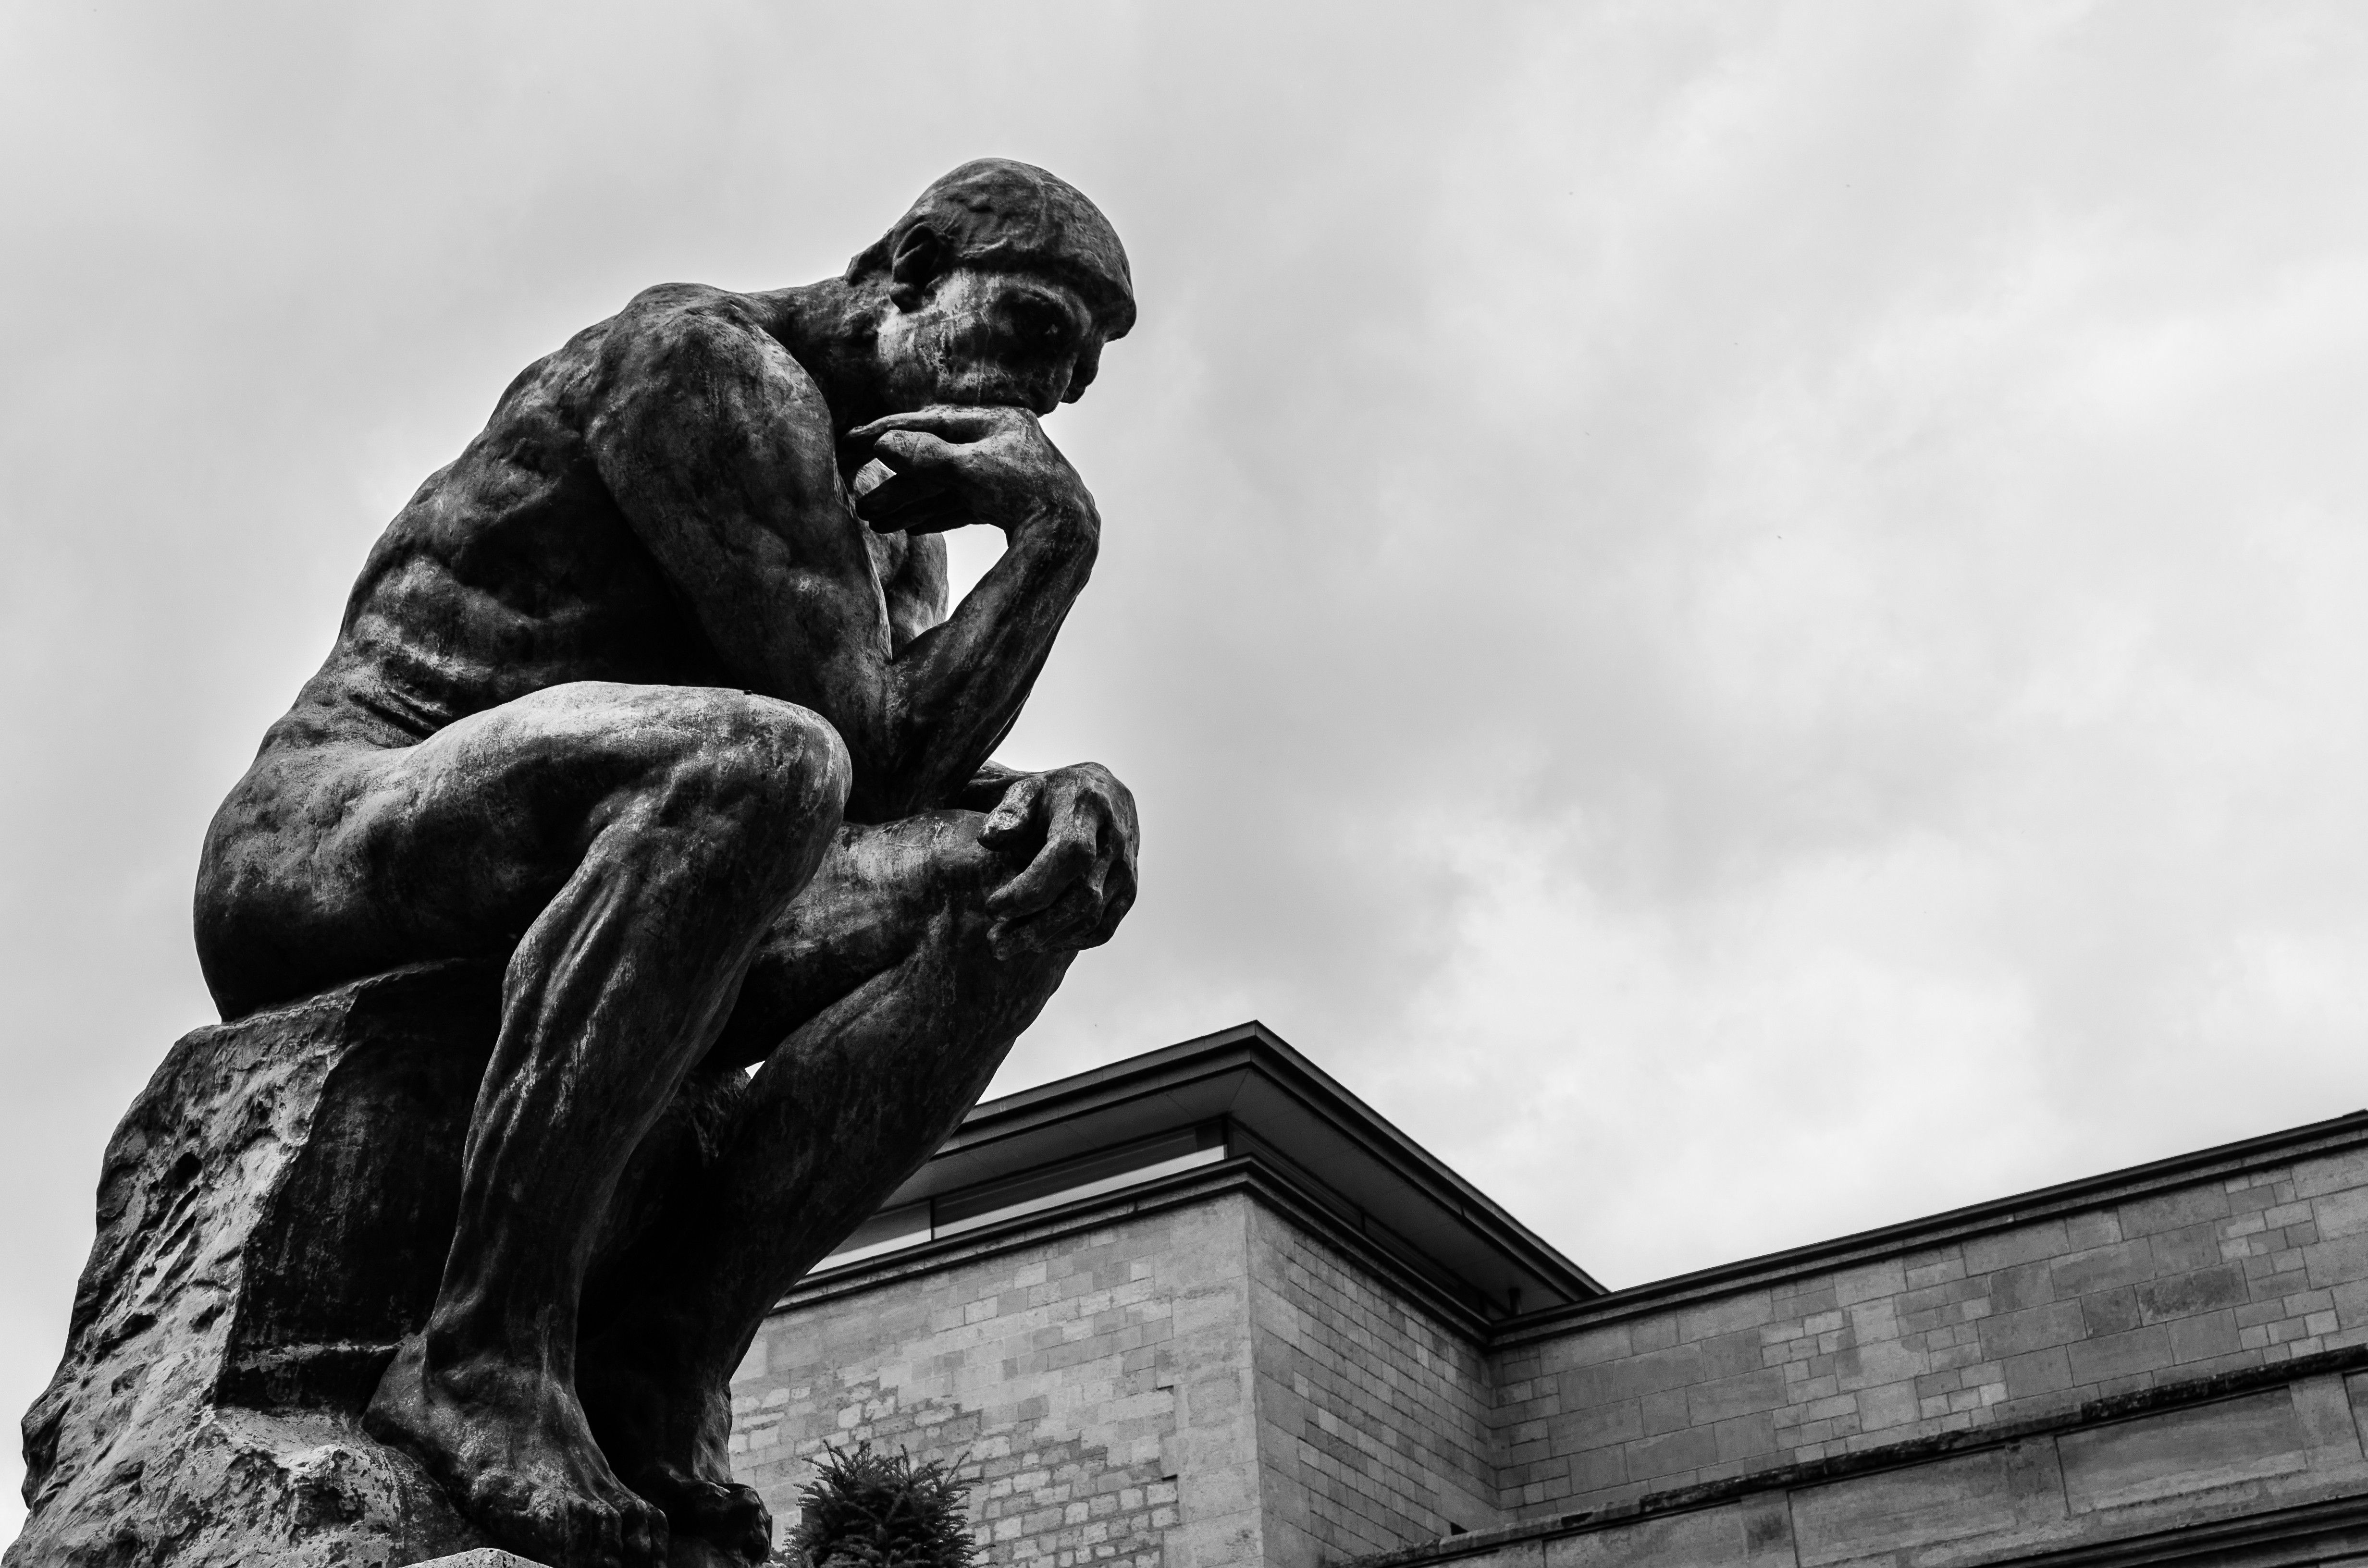 The Thinker Thinking Man 4928 X 3264 Wallpapers